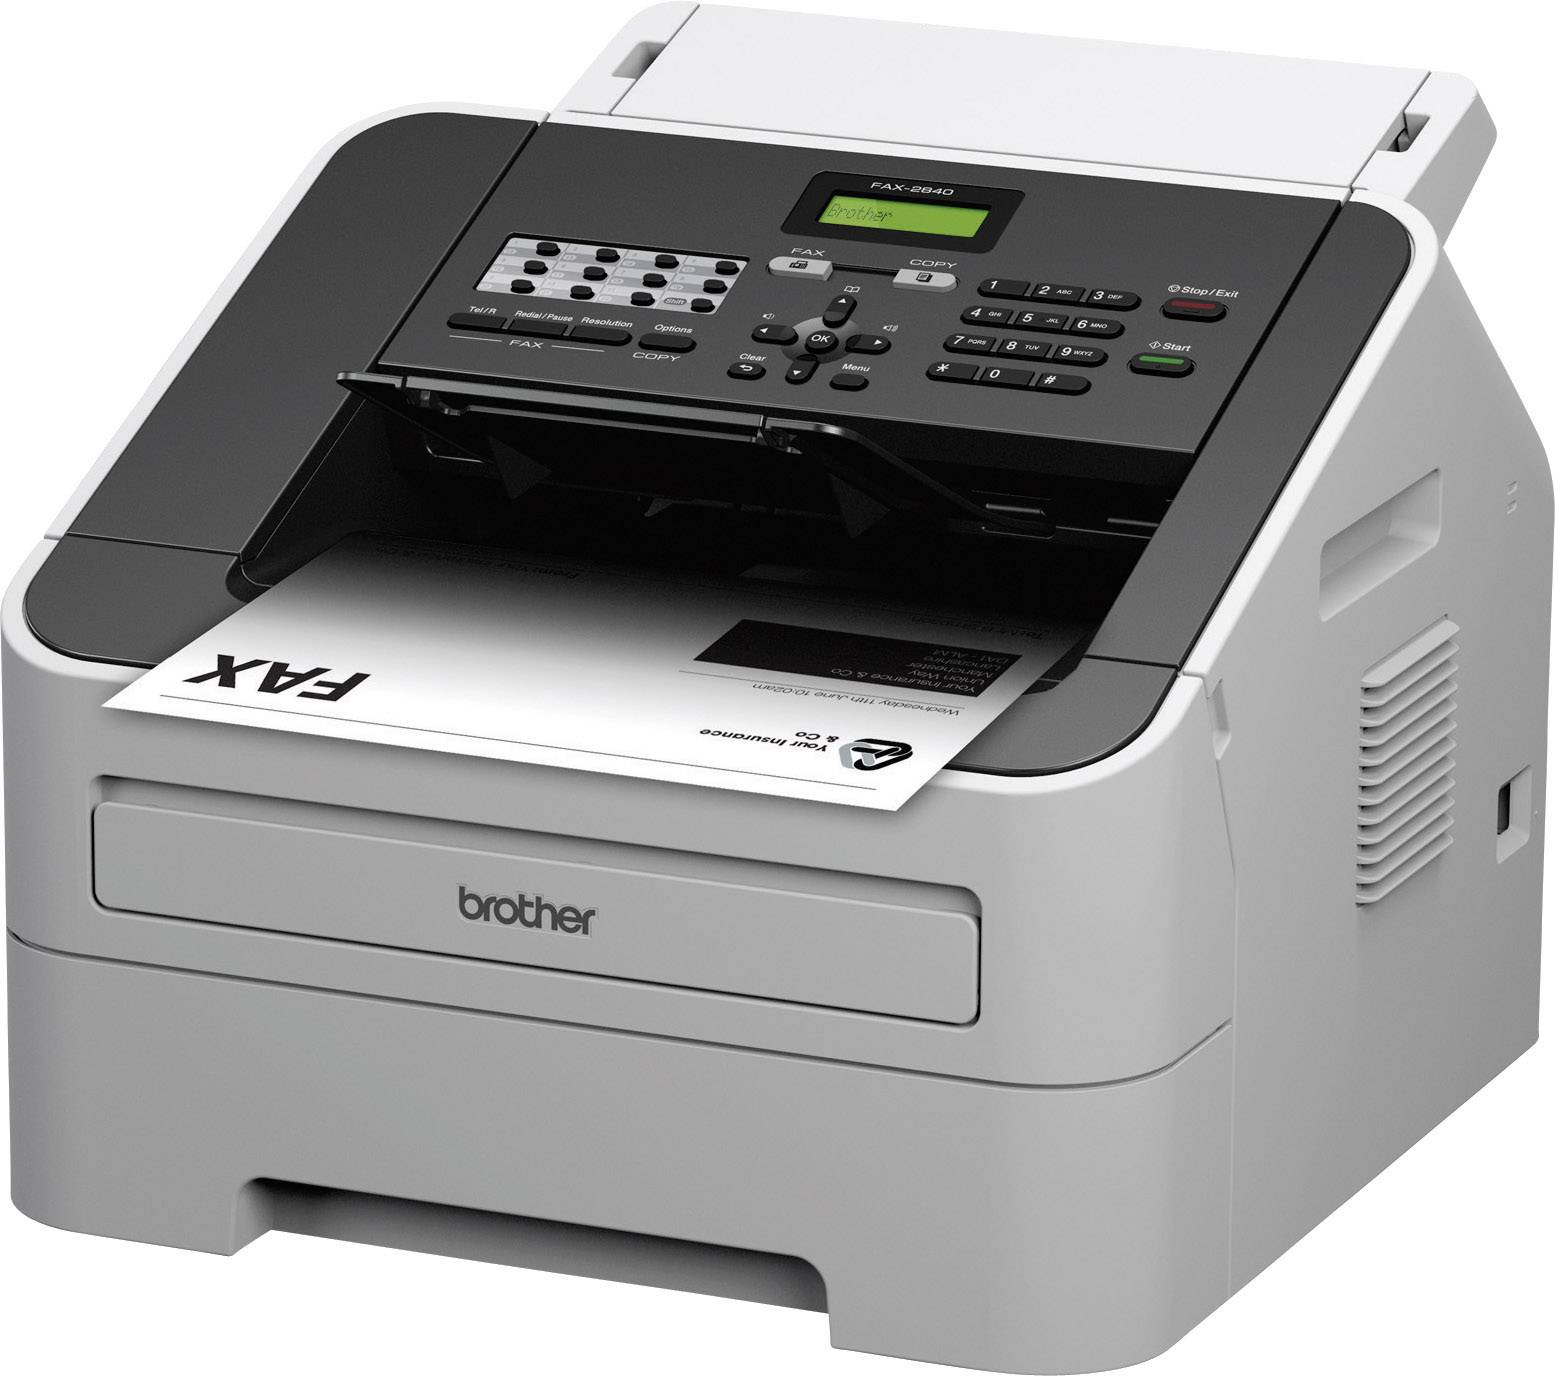 Brother FAX-2840 Laser fax machine Page memory 400 Sides | Conrad.com